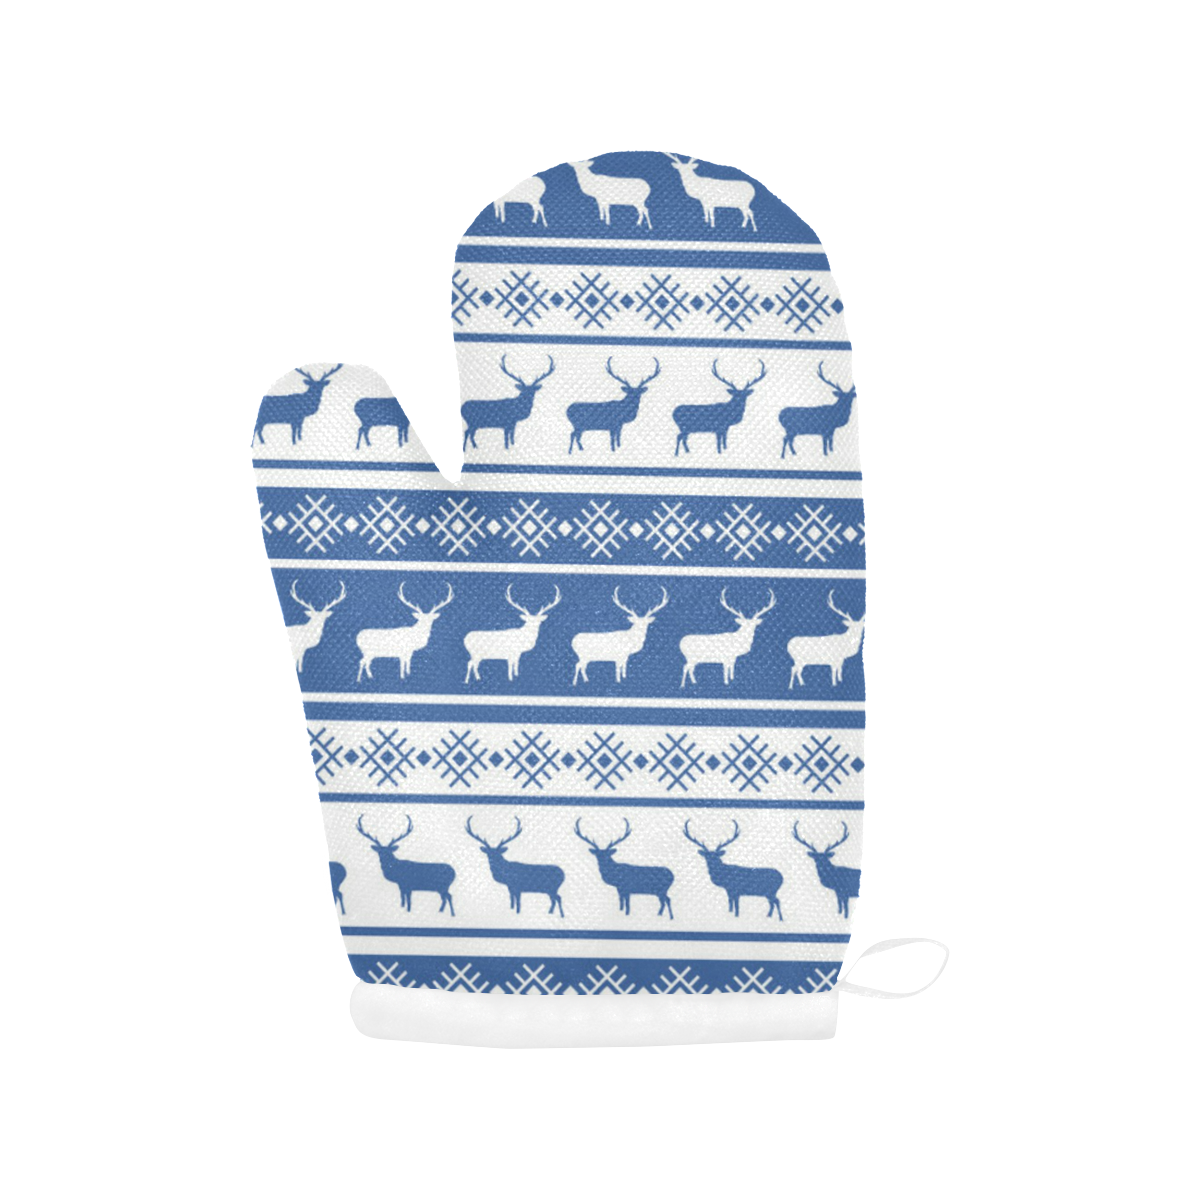 Christmas Deer Oven Mitts - Blue Oven Mitt (Two Pieces)